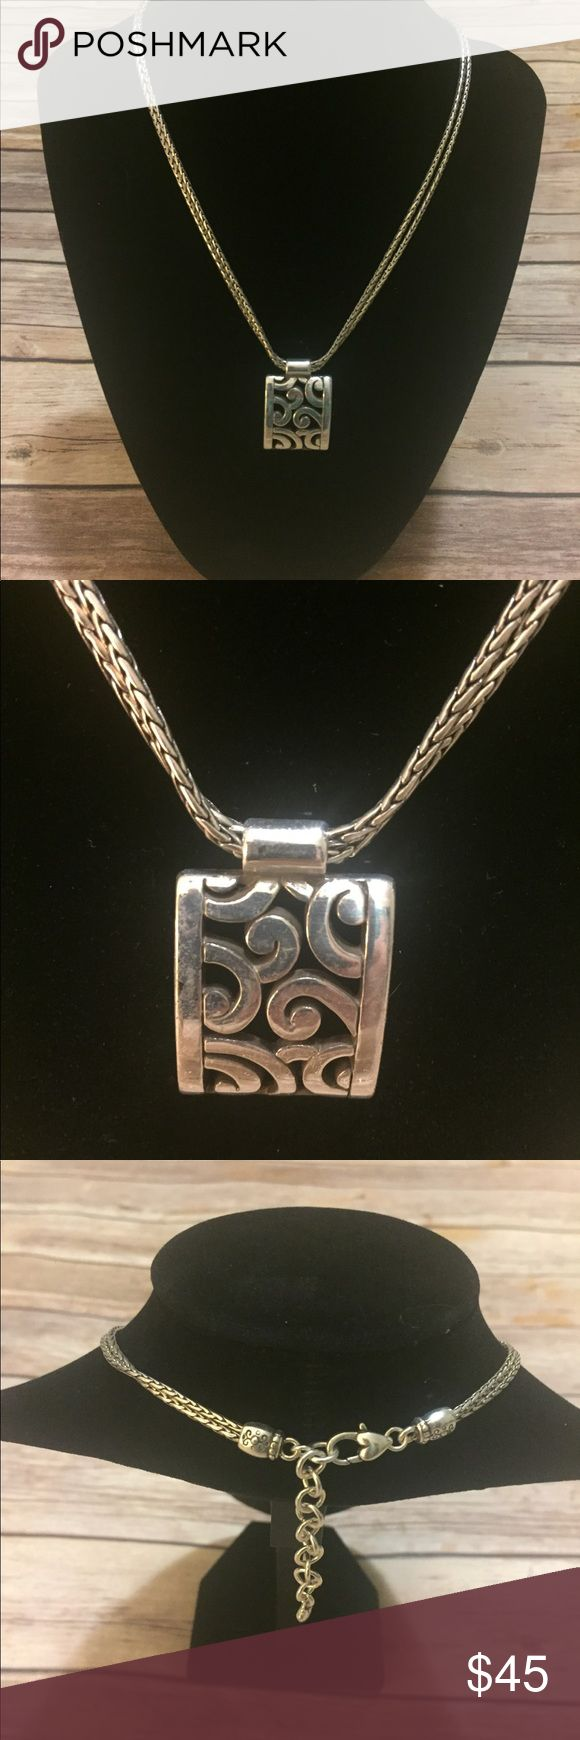 Beautiful Brighton double chain necklace Beautiful Brighton double chain necklace, adjustable length, used but great condition Brighton Jewelry Necklaces